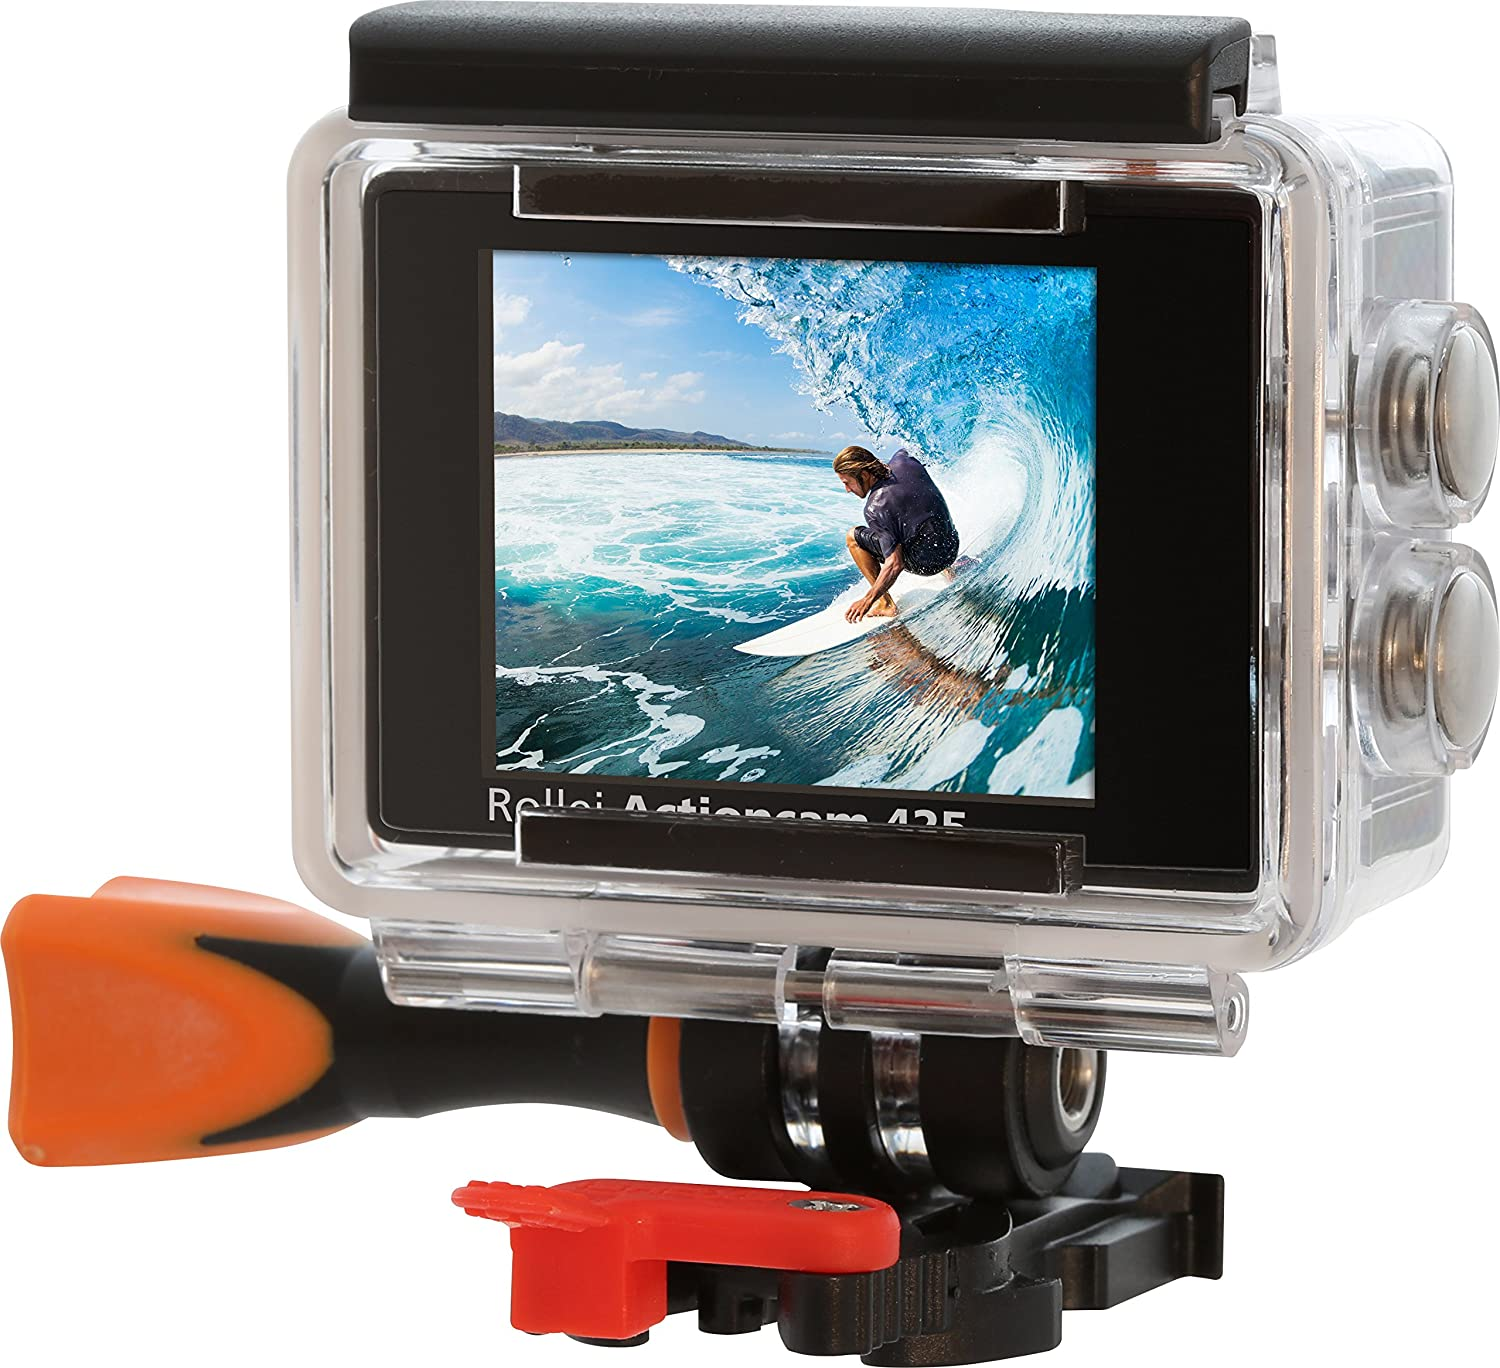 720p HD Video Resolution with Underwater Case and Bobber Black Rollei Actioncam 300 Plus